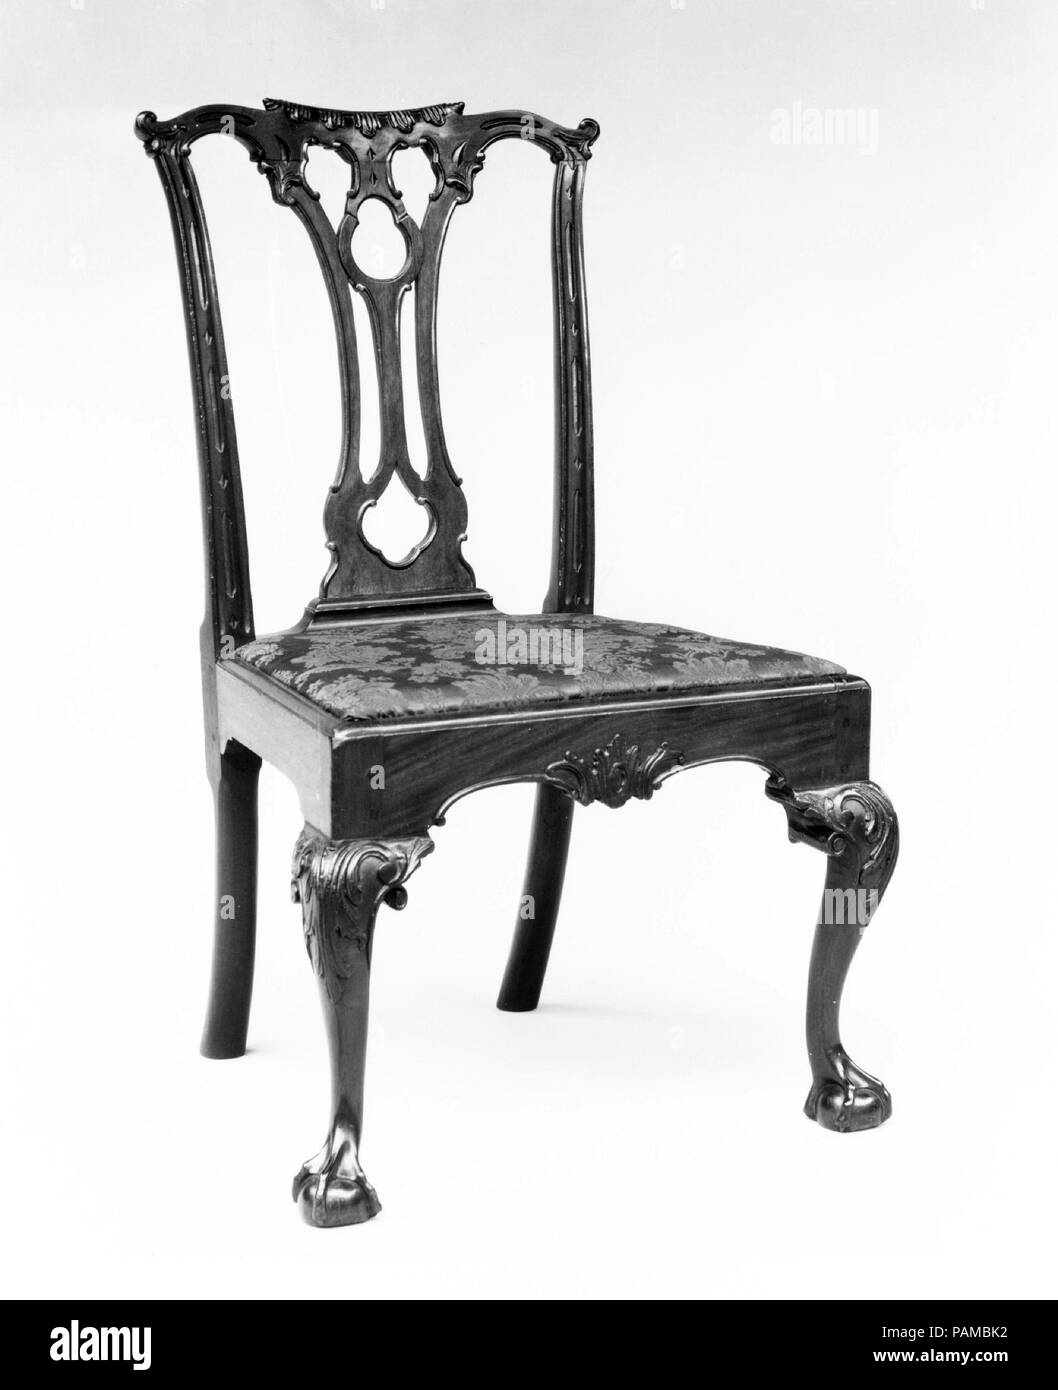 Side chair. Culture: American. Dimensions: 38 3/4 x 22 3/8 x 21 1/2 in. (98.4 x 56.8 x 54.6 cm). Date: 1760-90.  Chairs with trefoil-pierced splats enjoyed great popularity in Philadelphia. On the most richly embellished examples, such as this one, the stiles and crest rail are finely carved in alternating long and short lozenges. Museum: Metropolitan Museum of Art, New York, USA. Stock Photo